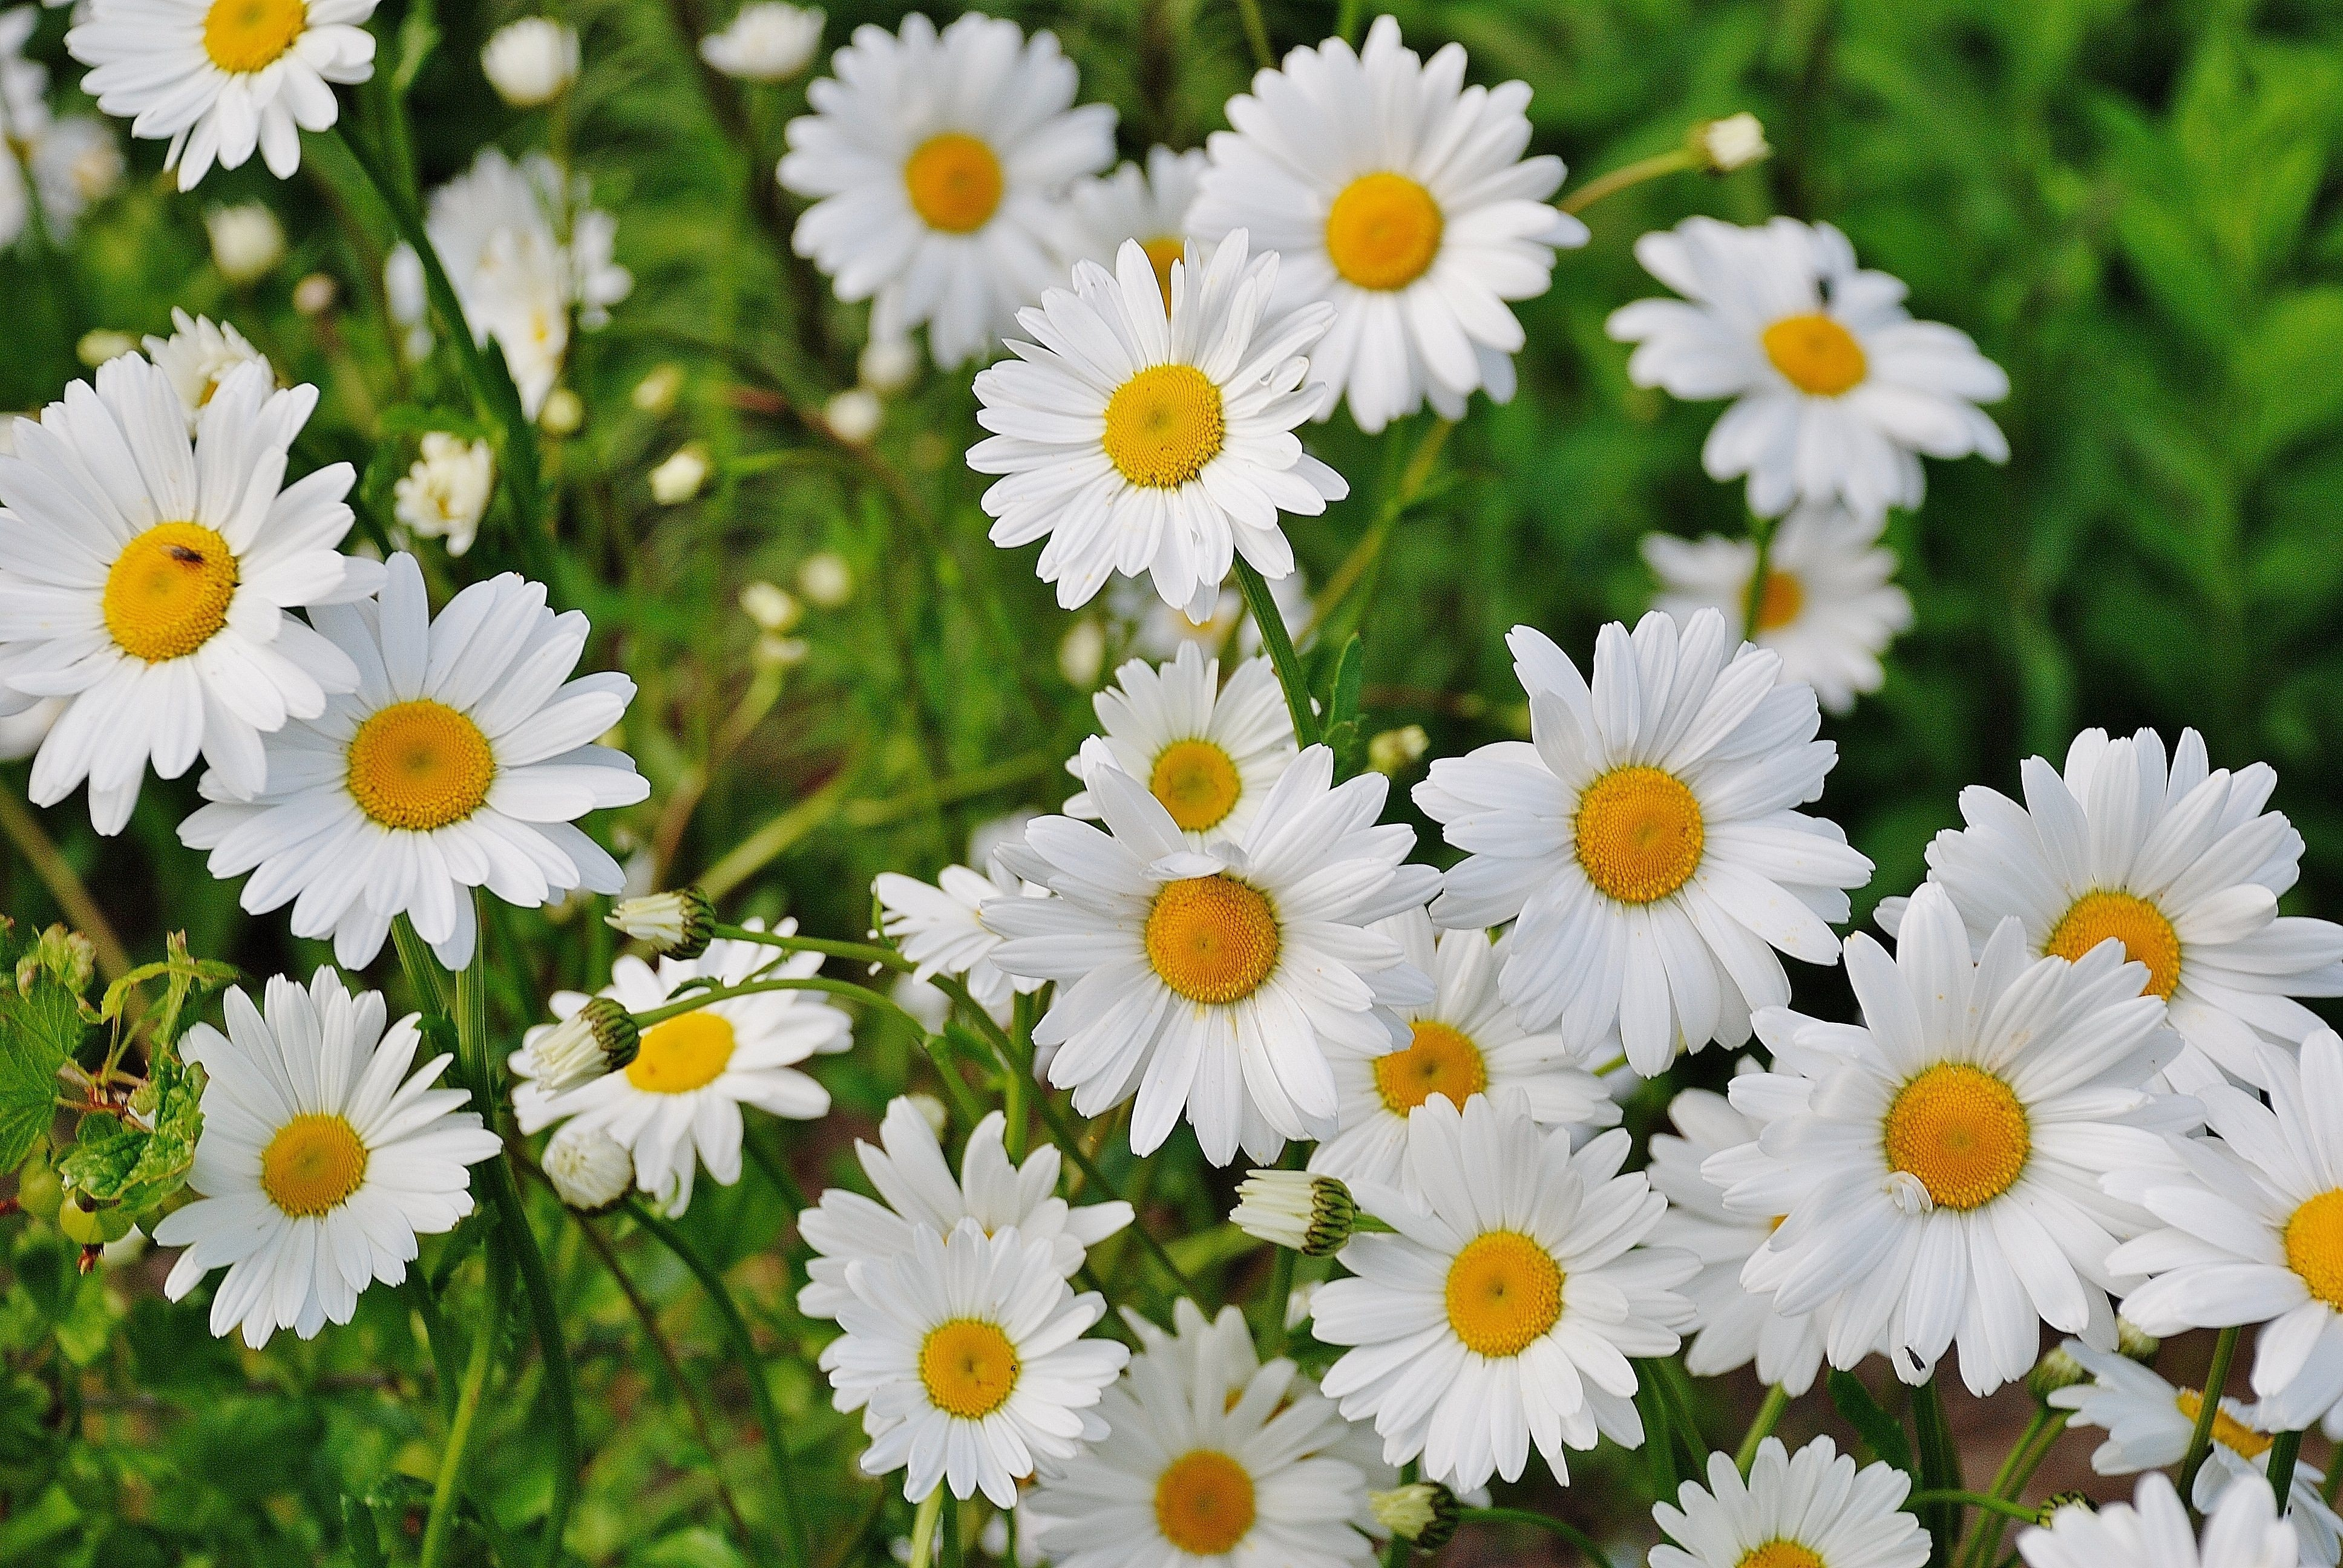 Related Searches Flower Flowers Daisies HD Wallpaper Close Up